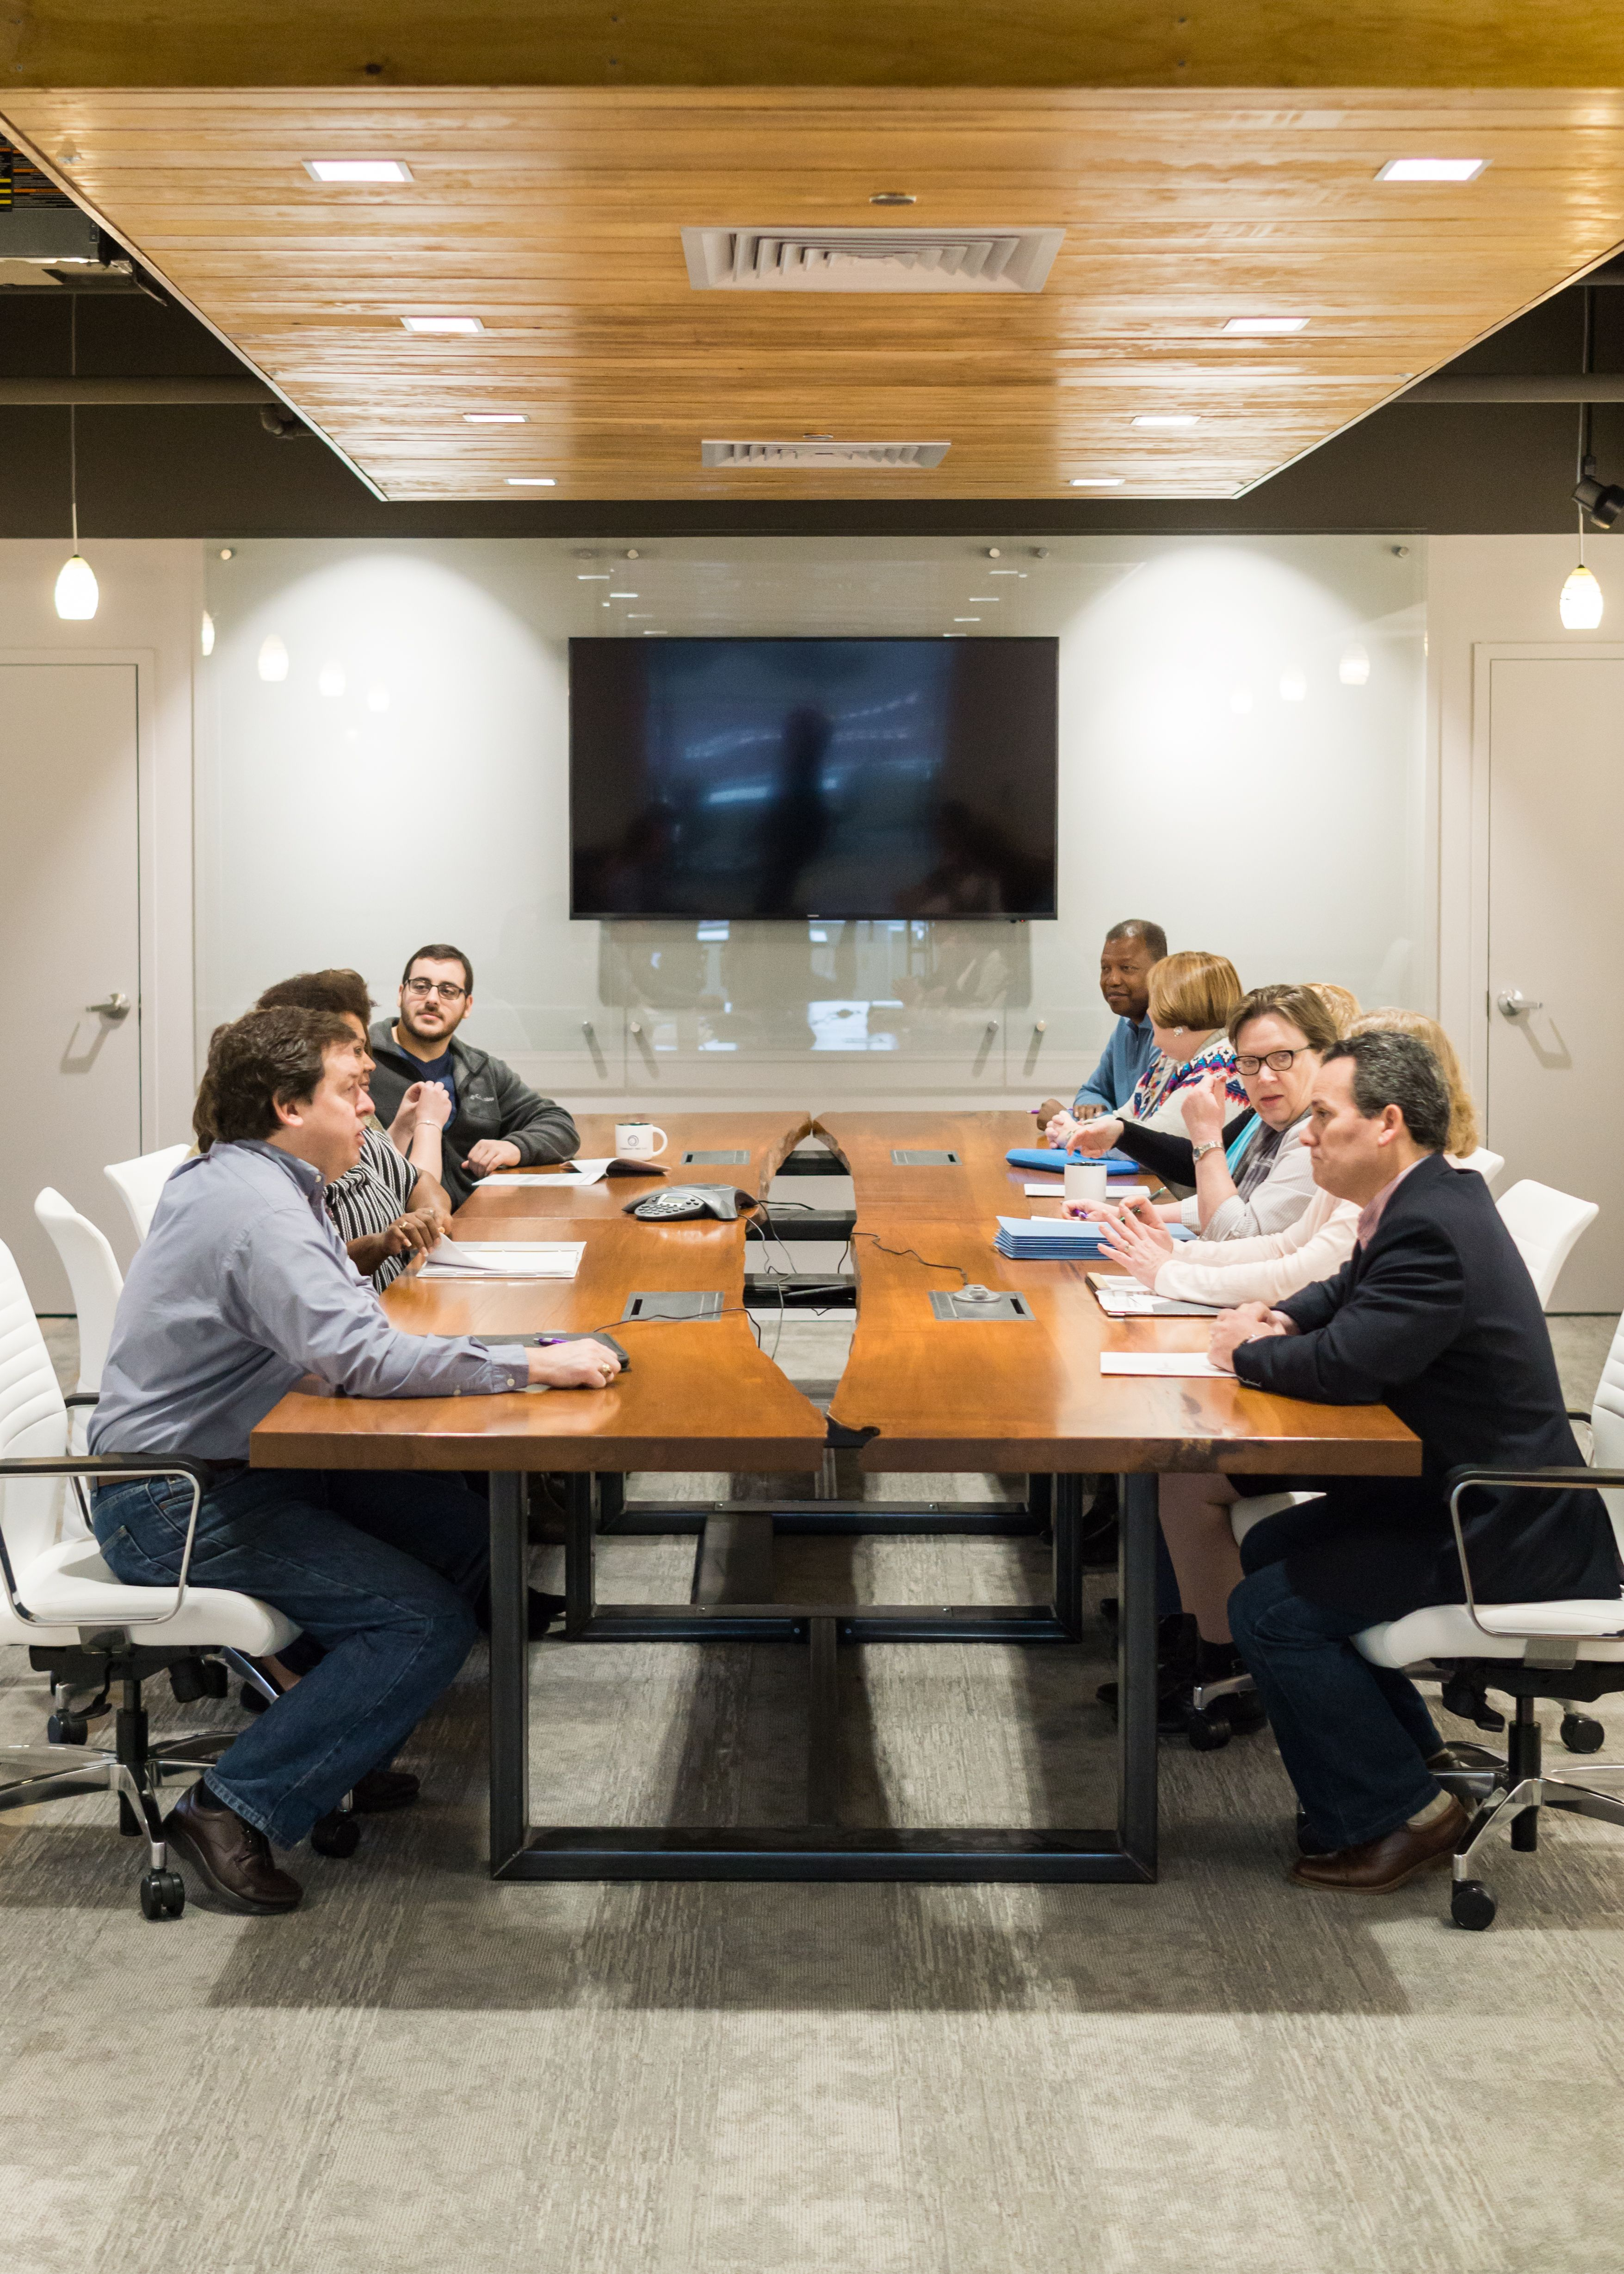 ... Edge Conference Table Proudly Made By Greg Pilotti Furniture Makers.  This Table Is Made From Four Bookmatched Maple Slabs Sourced From  Pennsylvania.